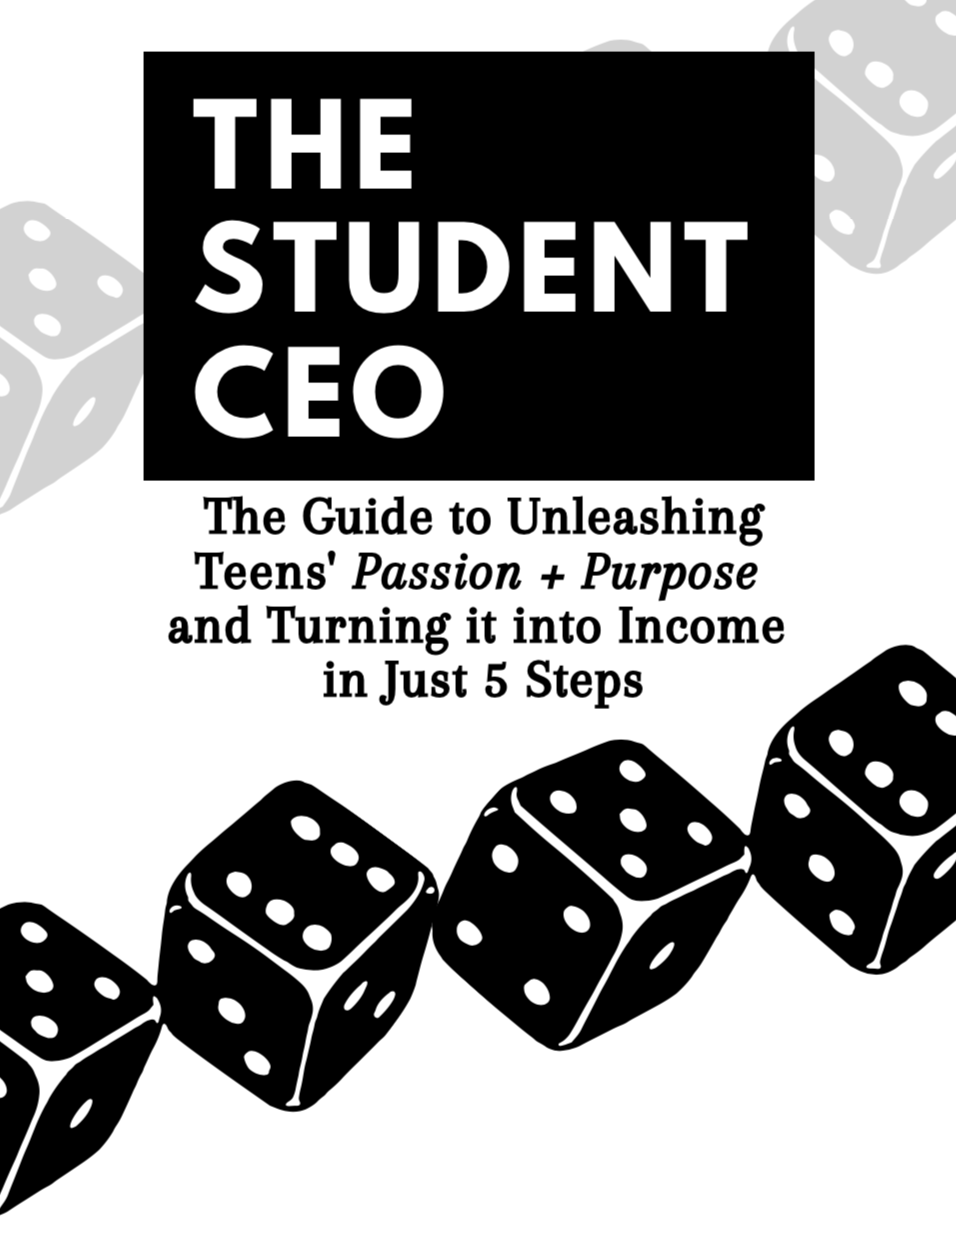 The Student CEO